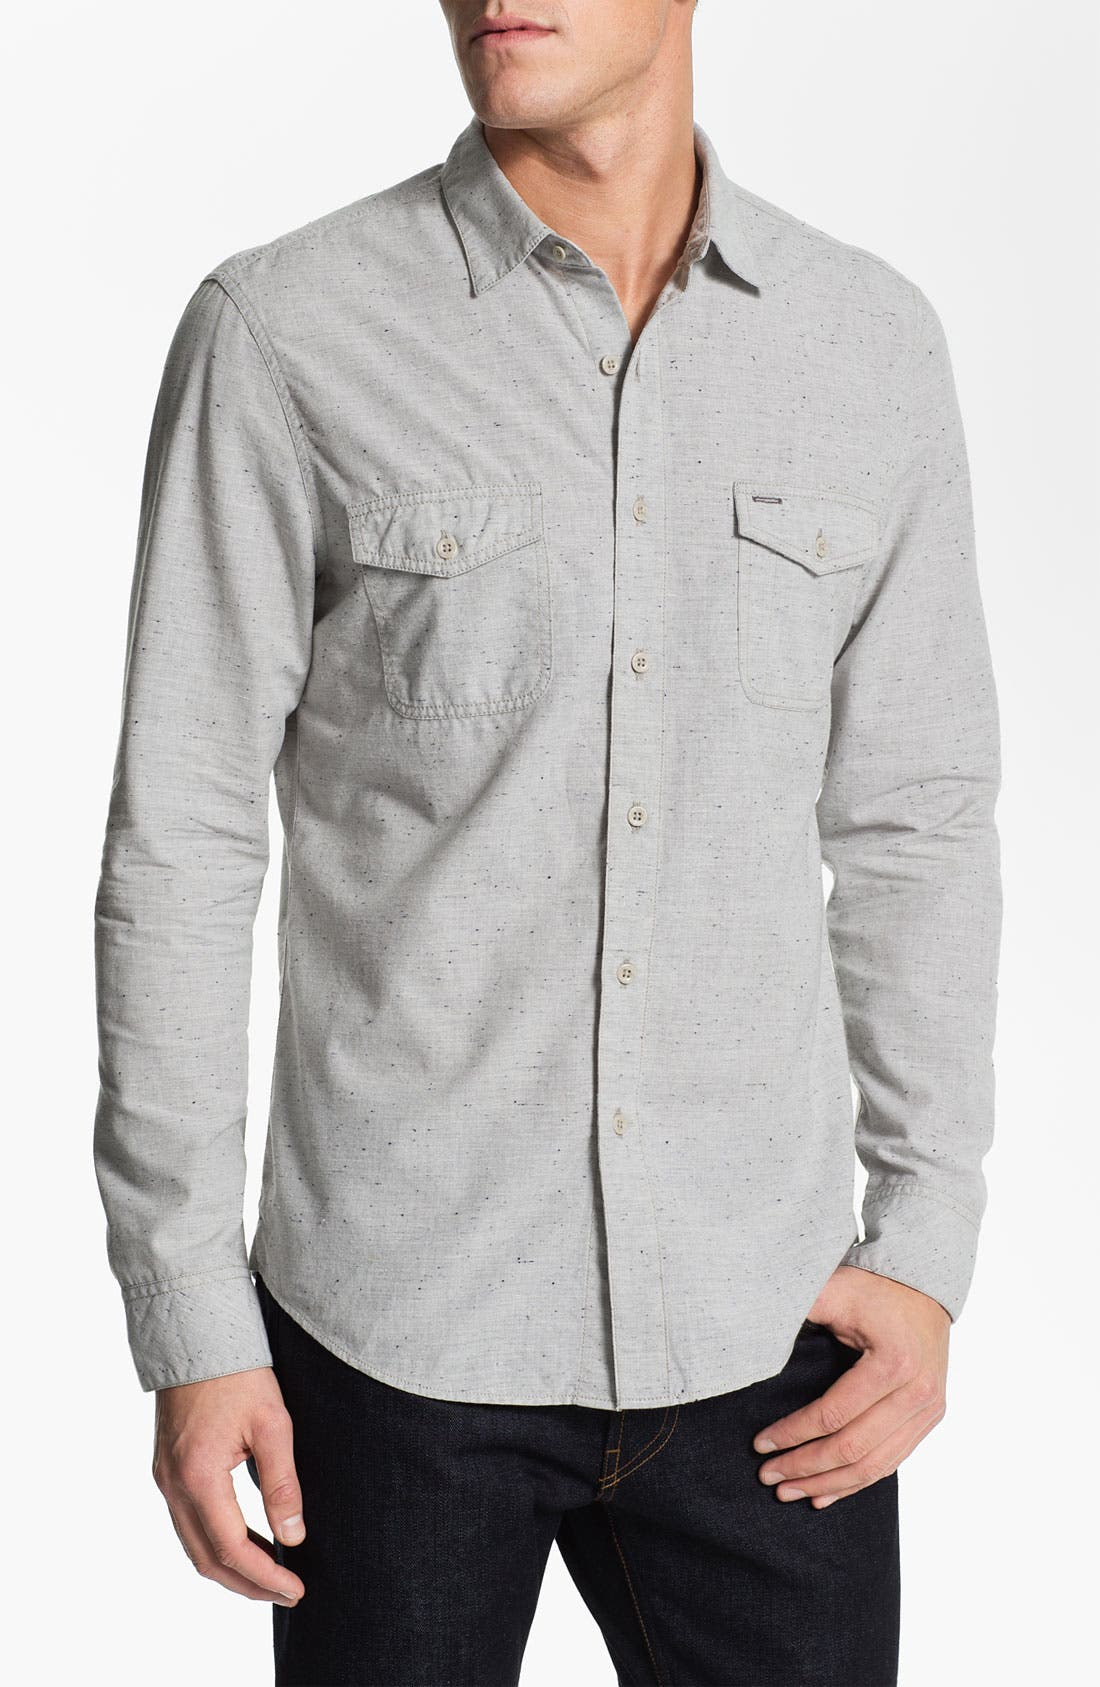 Main Image - 1901 Nep Cotton Woven Shirt